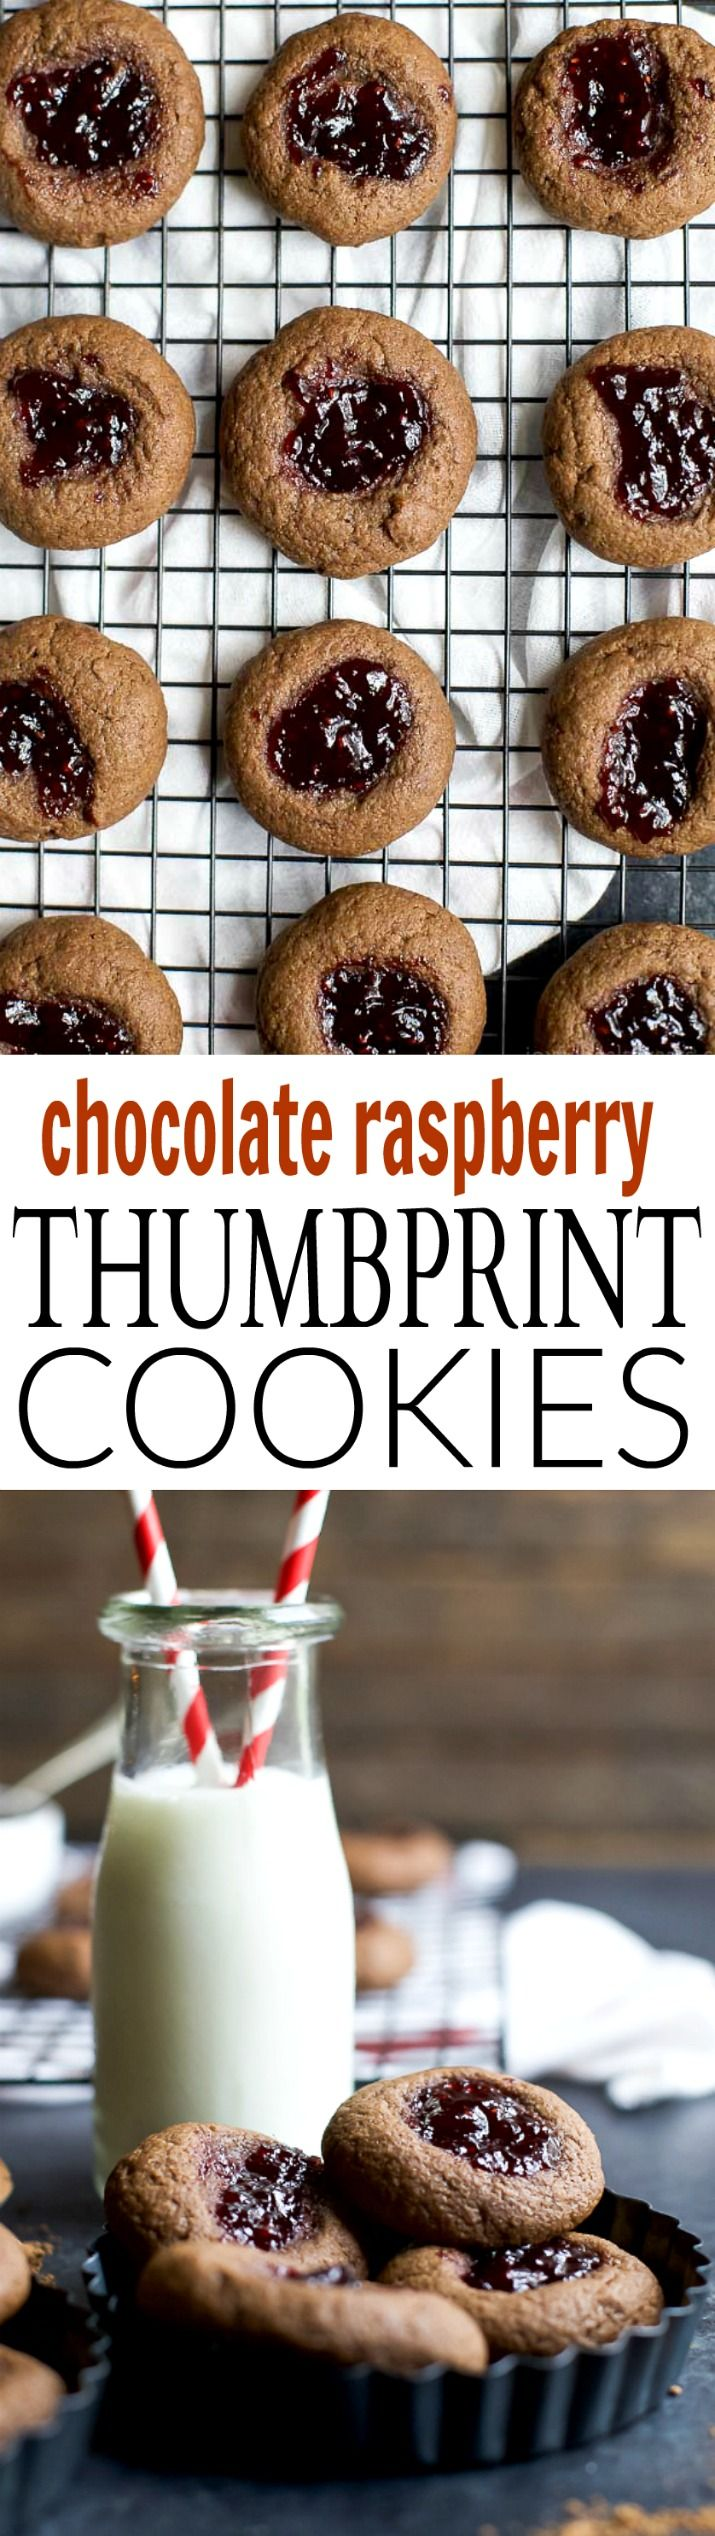 Thumbprint Cookies are a classic Christmas Cookie around the holidays. These RASPBERRY CHOCOLATE THUMBPRINT COOKIES have a subtle chocolate flavor with a burst of raspberry that you'll fall in love with! | joyfulhealthyeats.com